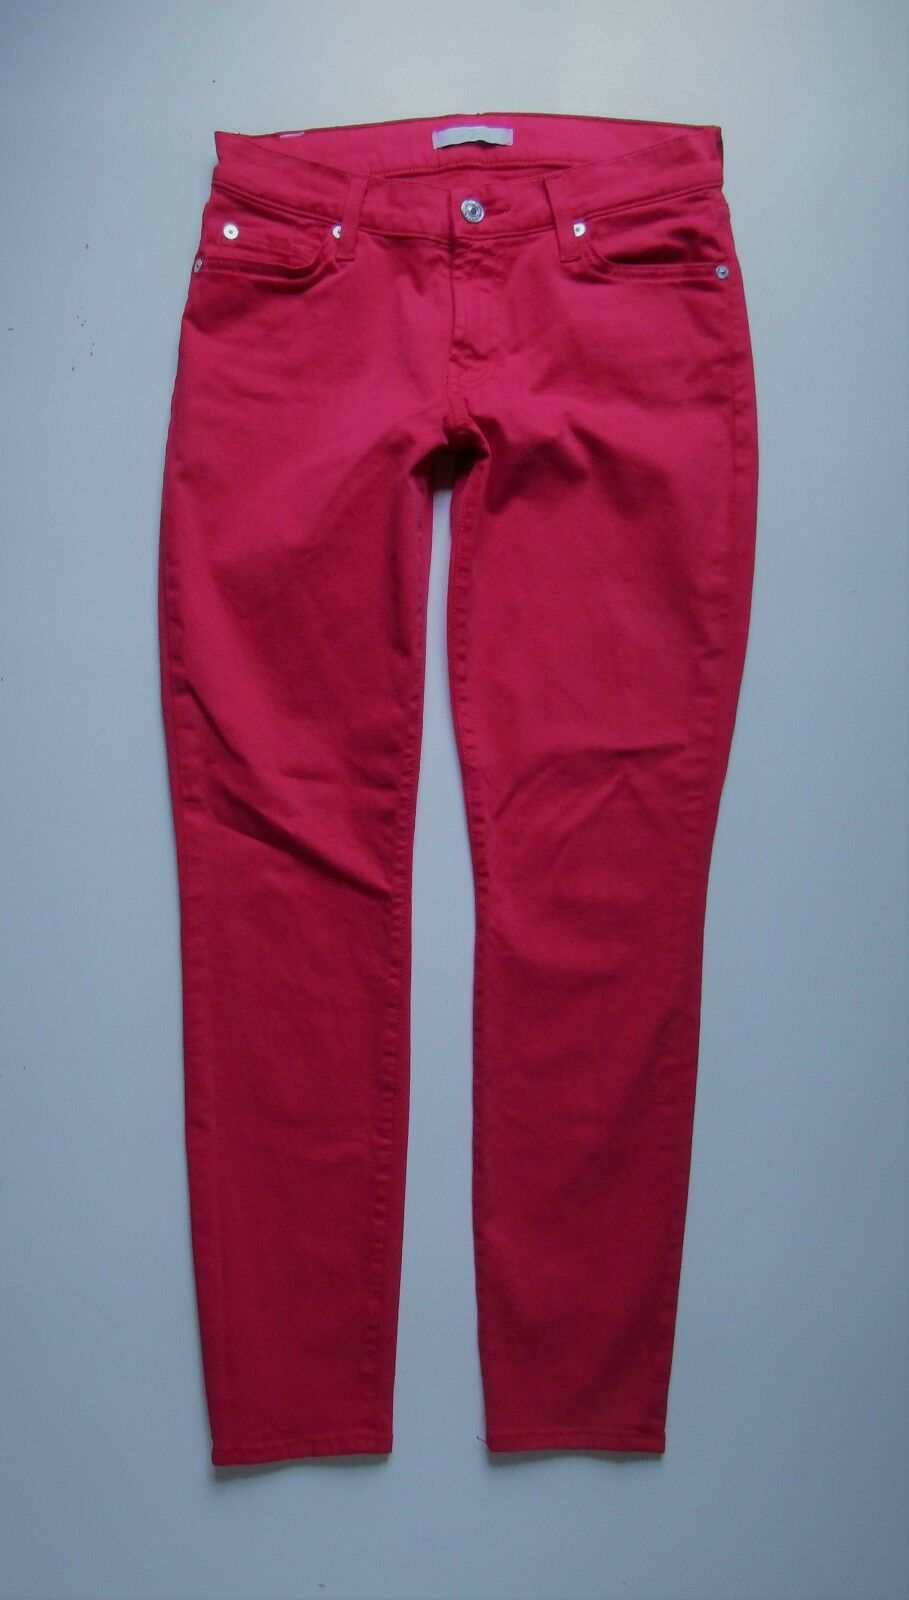 7 Seven For All Mankind Skinny Ankle Stretch Jean in Red Pink - Size 27